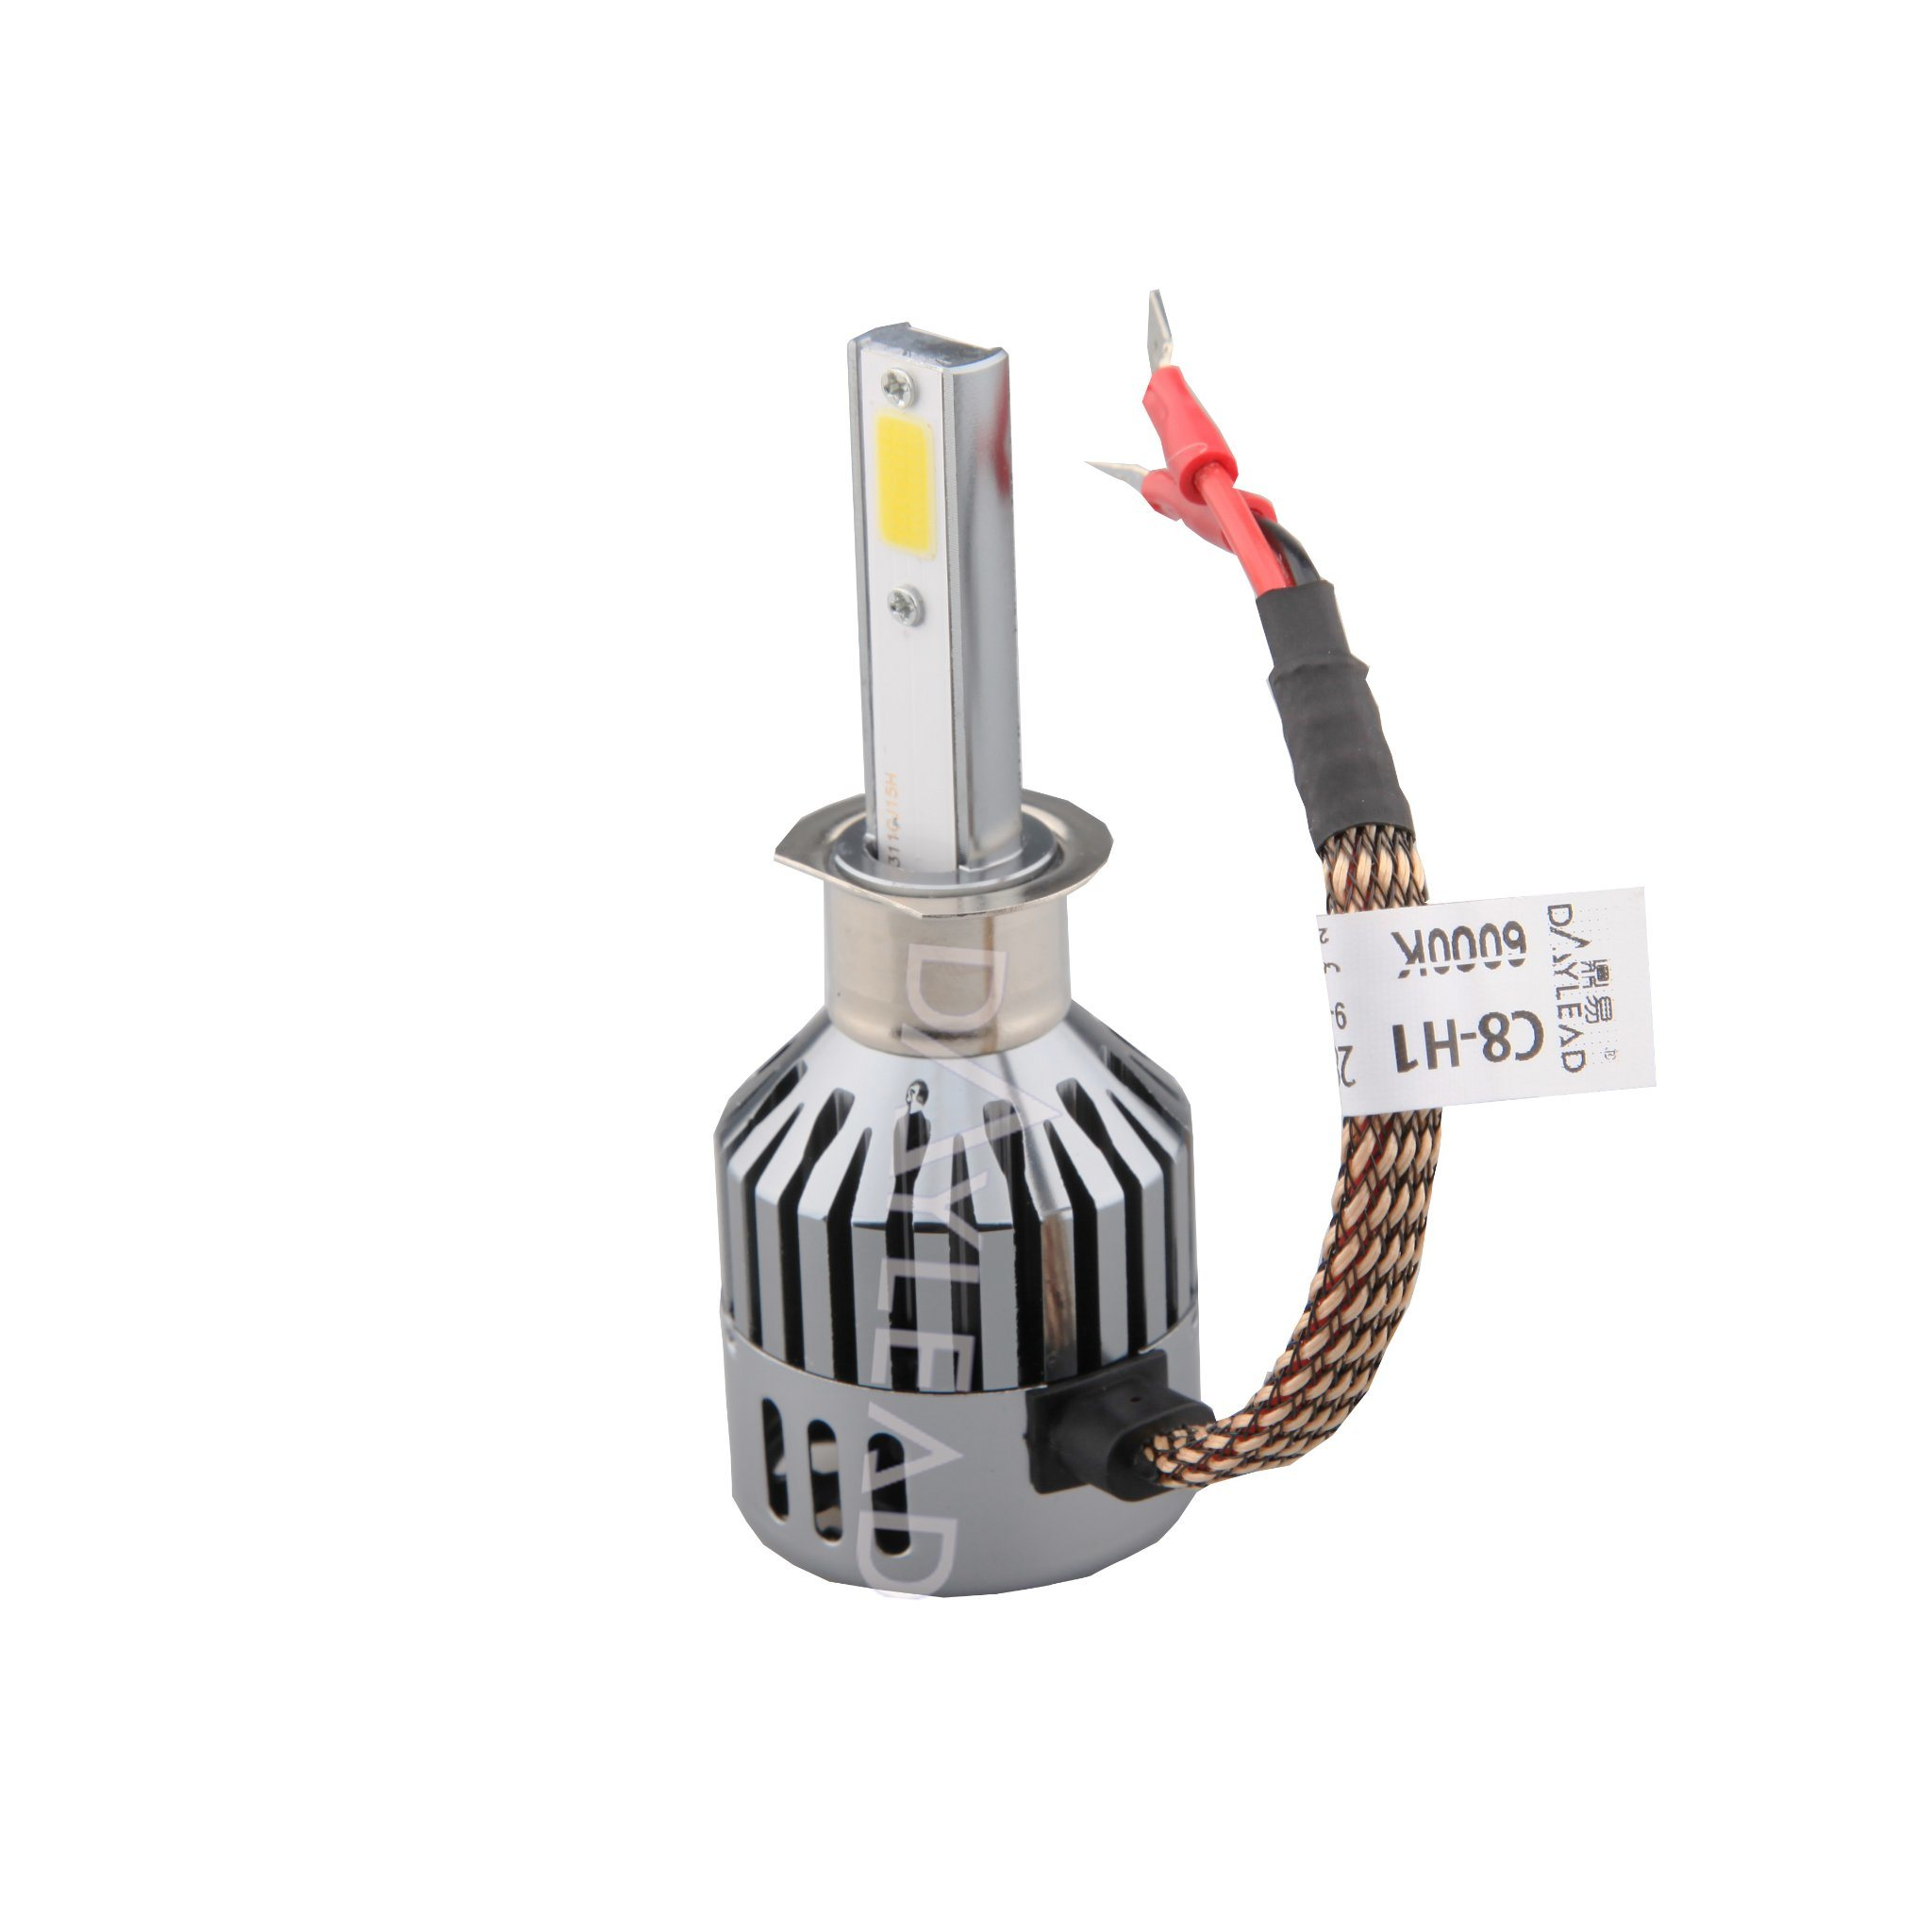 H1 Auto LED Headlight Conversion Kit with The Best Price